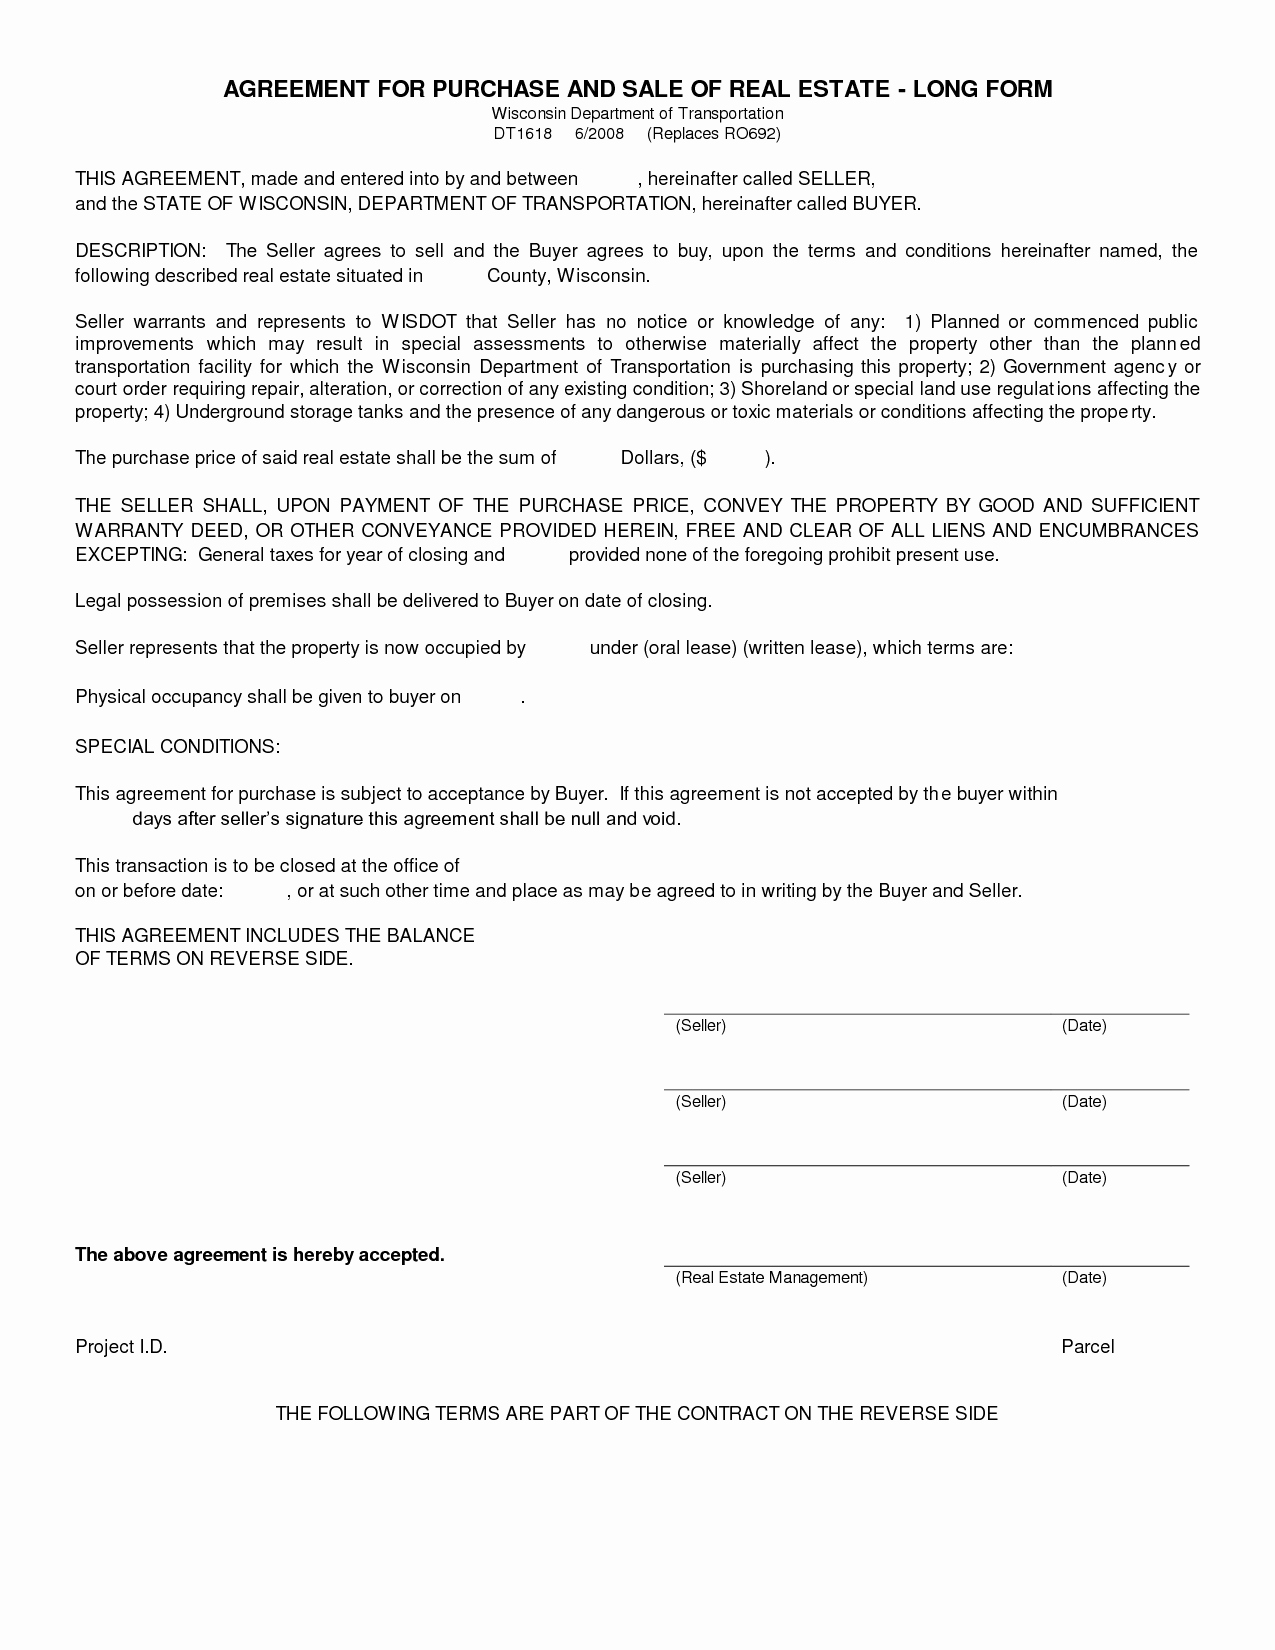 Business Purchase Agreement Template Free Lovely Free Blank Purchase Agreement form Images Agreement to